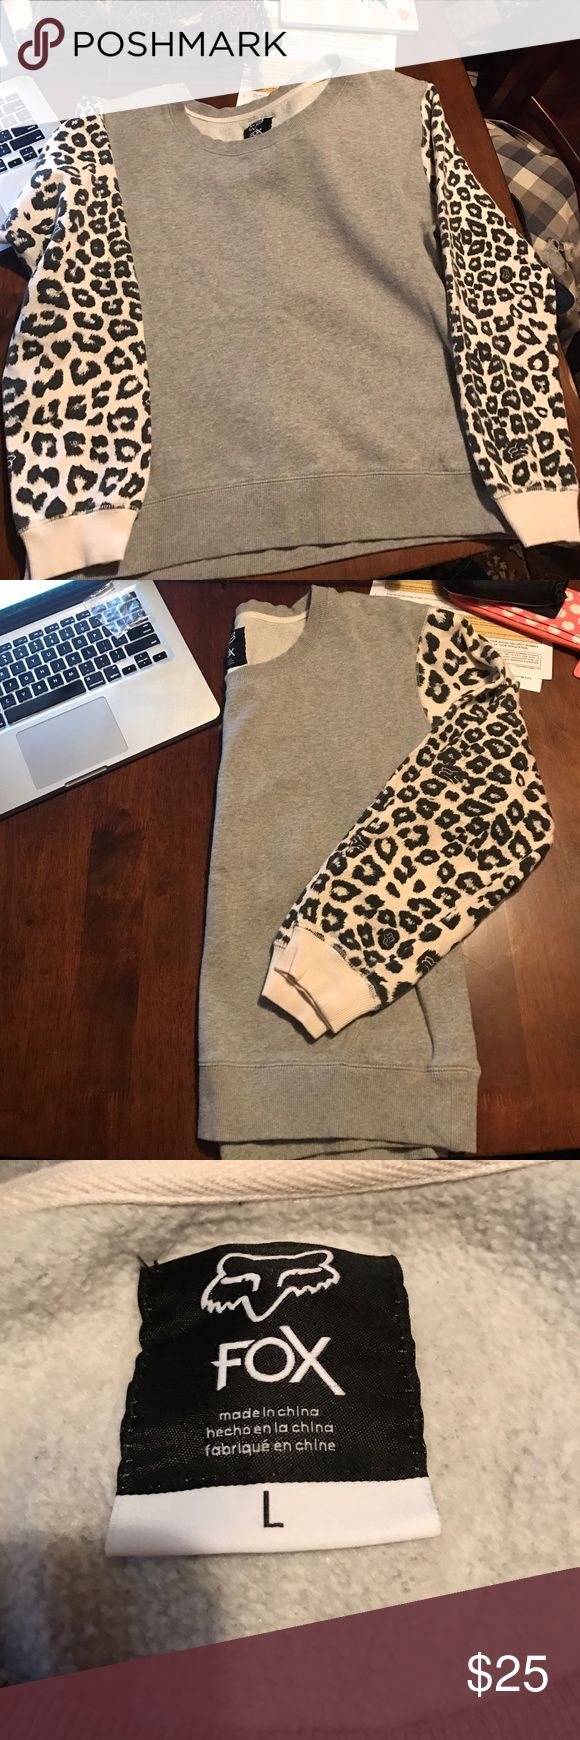 Fox sweat shirt with cheetah print sleeves Fox brand sweatshirt. Cheetah print with fox on sleeves. Hardly worn, size Large. Great condition. Light heather grey, and warm and fuzzy underneath. Fox Tops Sweatshirts & Hoodies